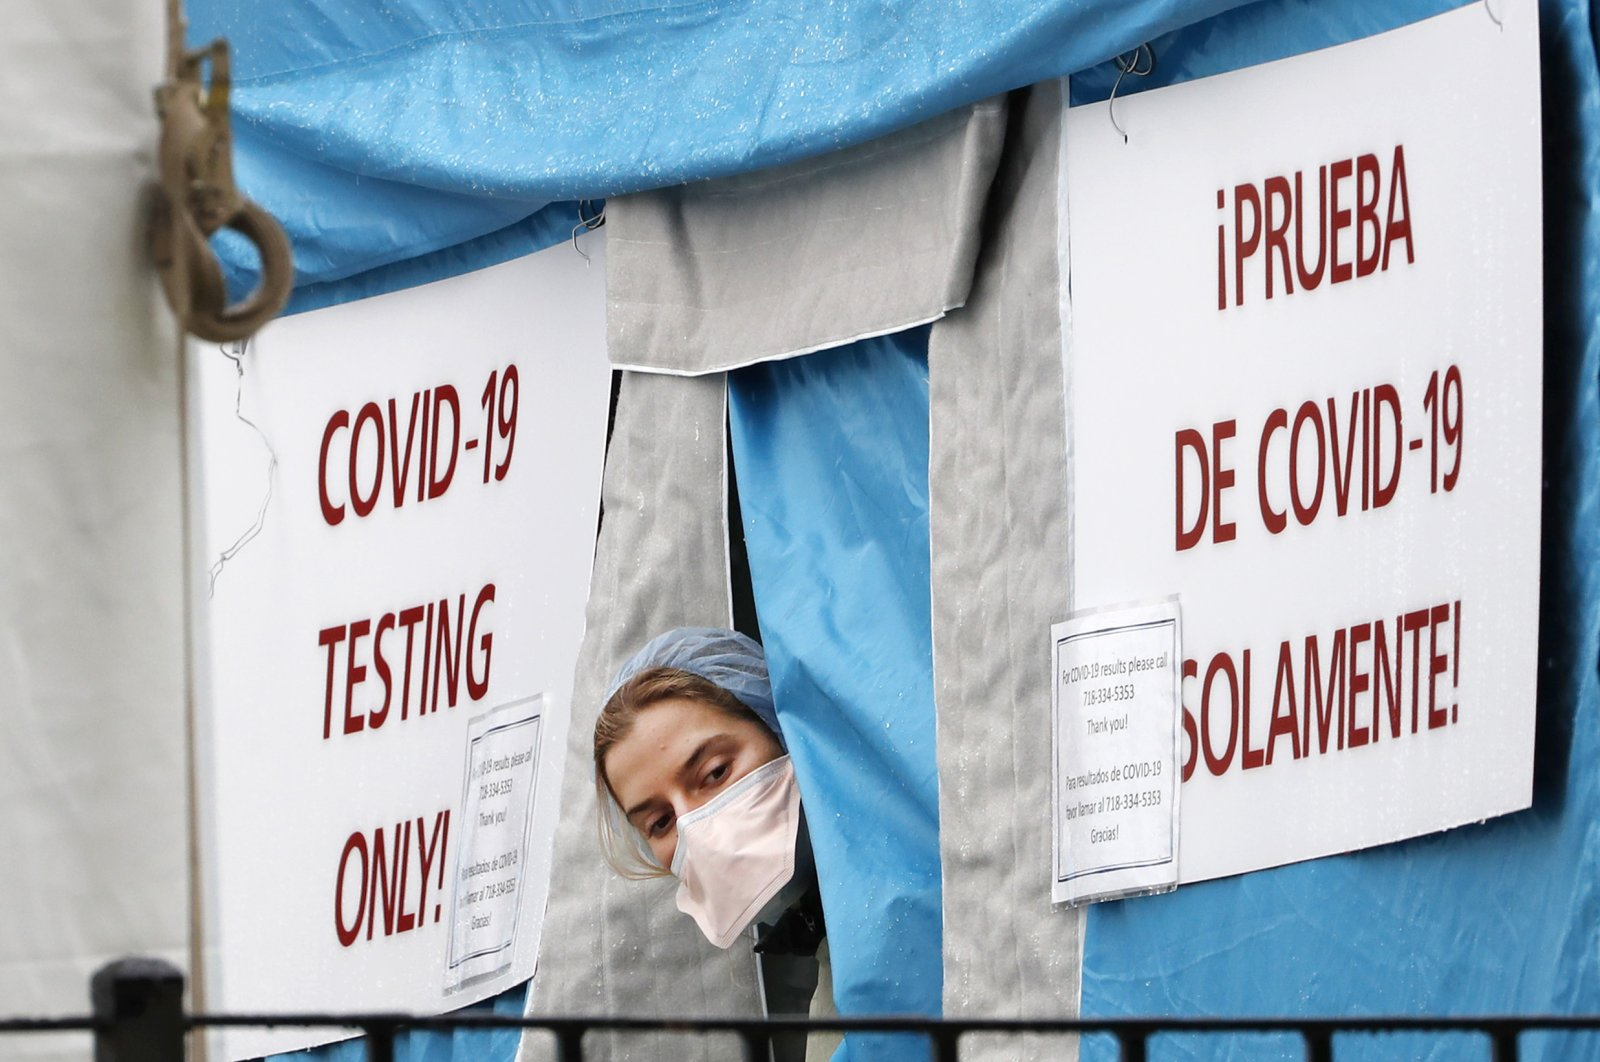 A medical worker sticks her head outside a COVID-19 testing tent set up outside Elmhurst Hospital Center in New York, Saturday, March 28, 2020. (AP Photo)